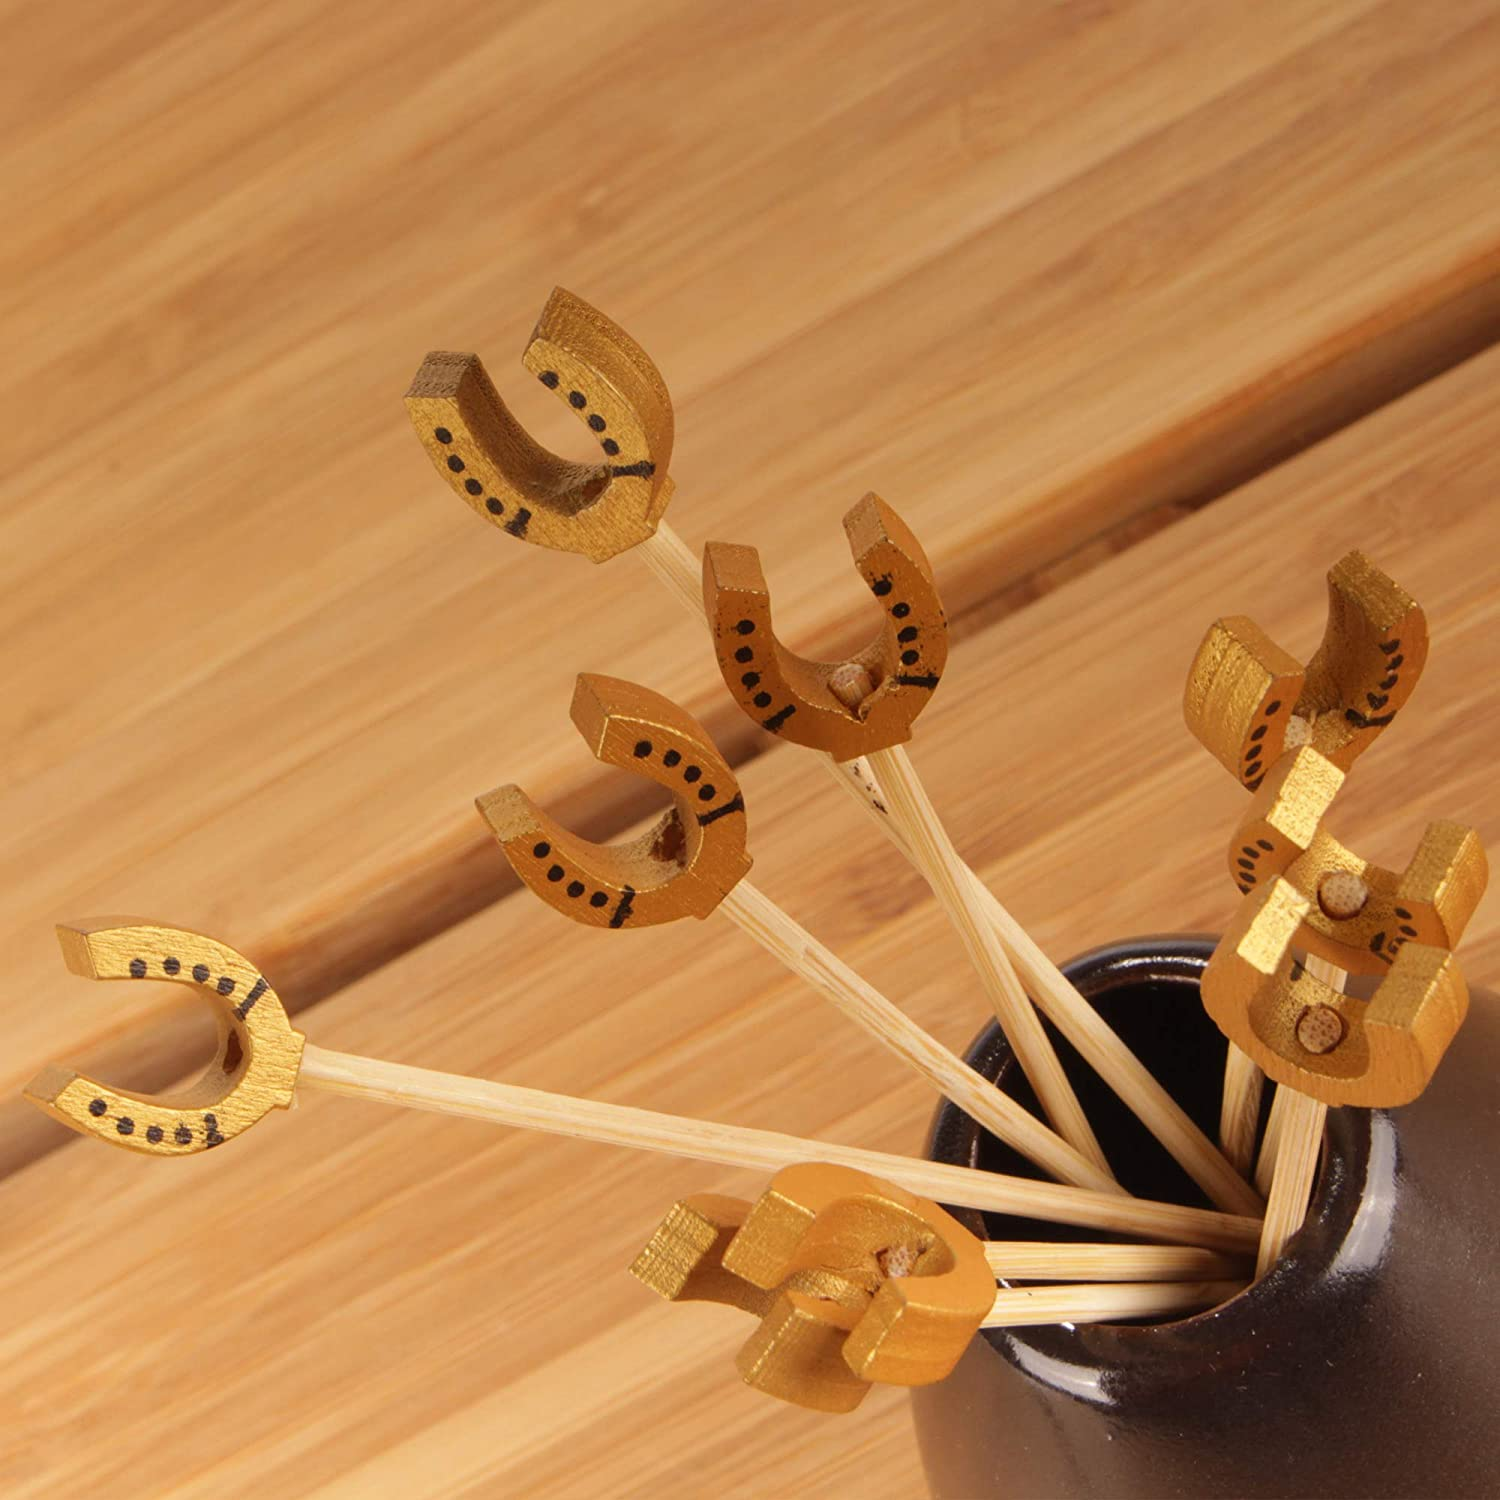 Holidays Restaurants or Buffets Party Supplies 100 Pieces Holiday/'s 6955114974195a BambooMN 3.9 Decorative Lucky Horseshoe End Bamboo Cocktail Fruit Sandwich Picks Skewers for Catered Events